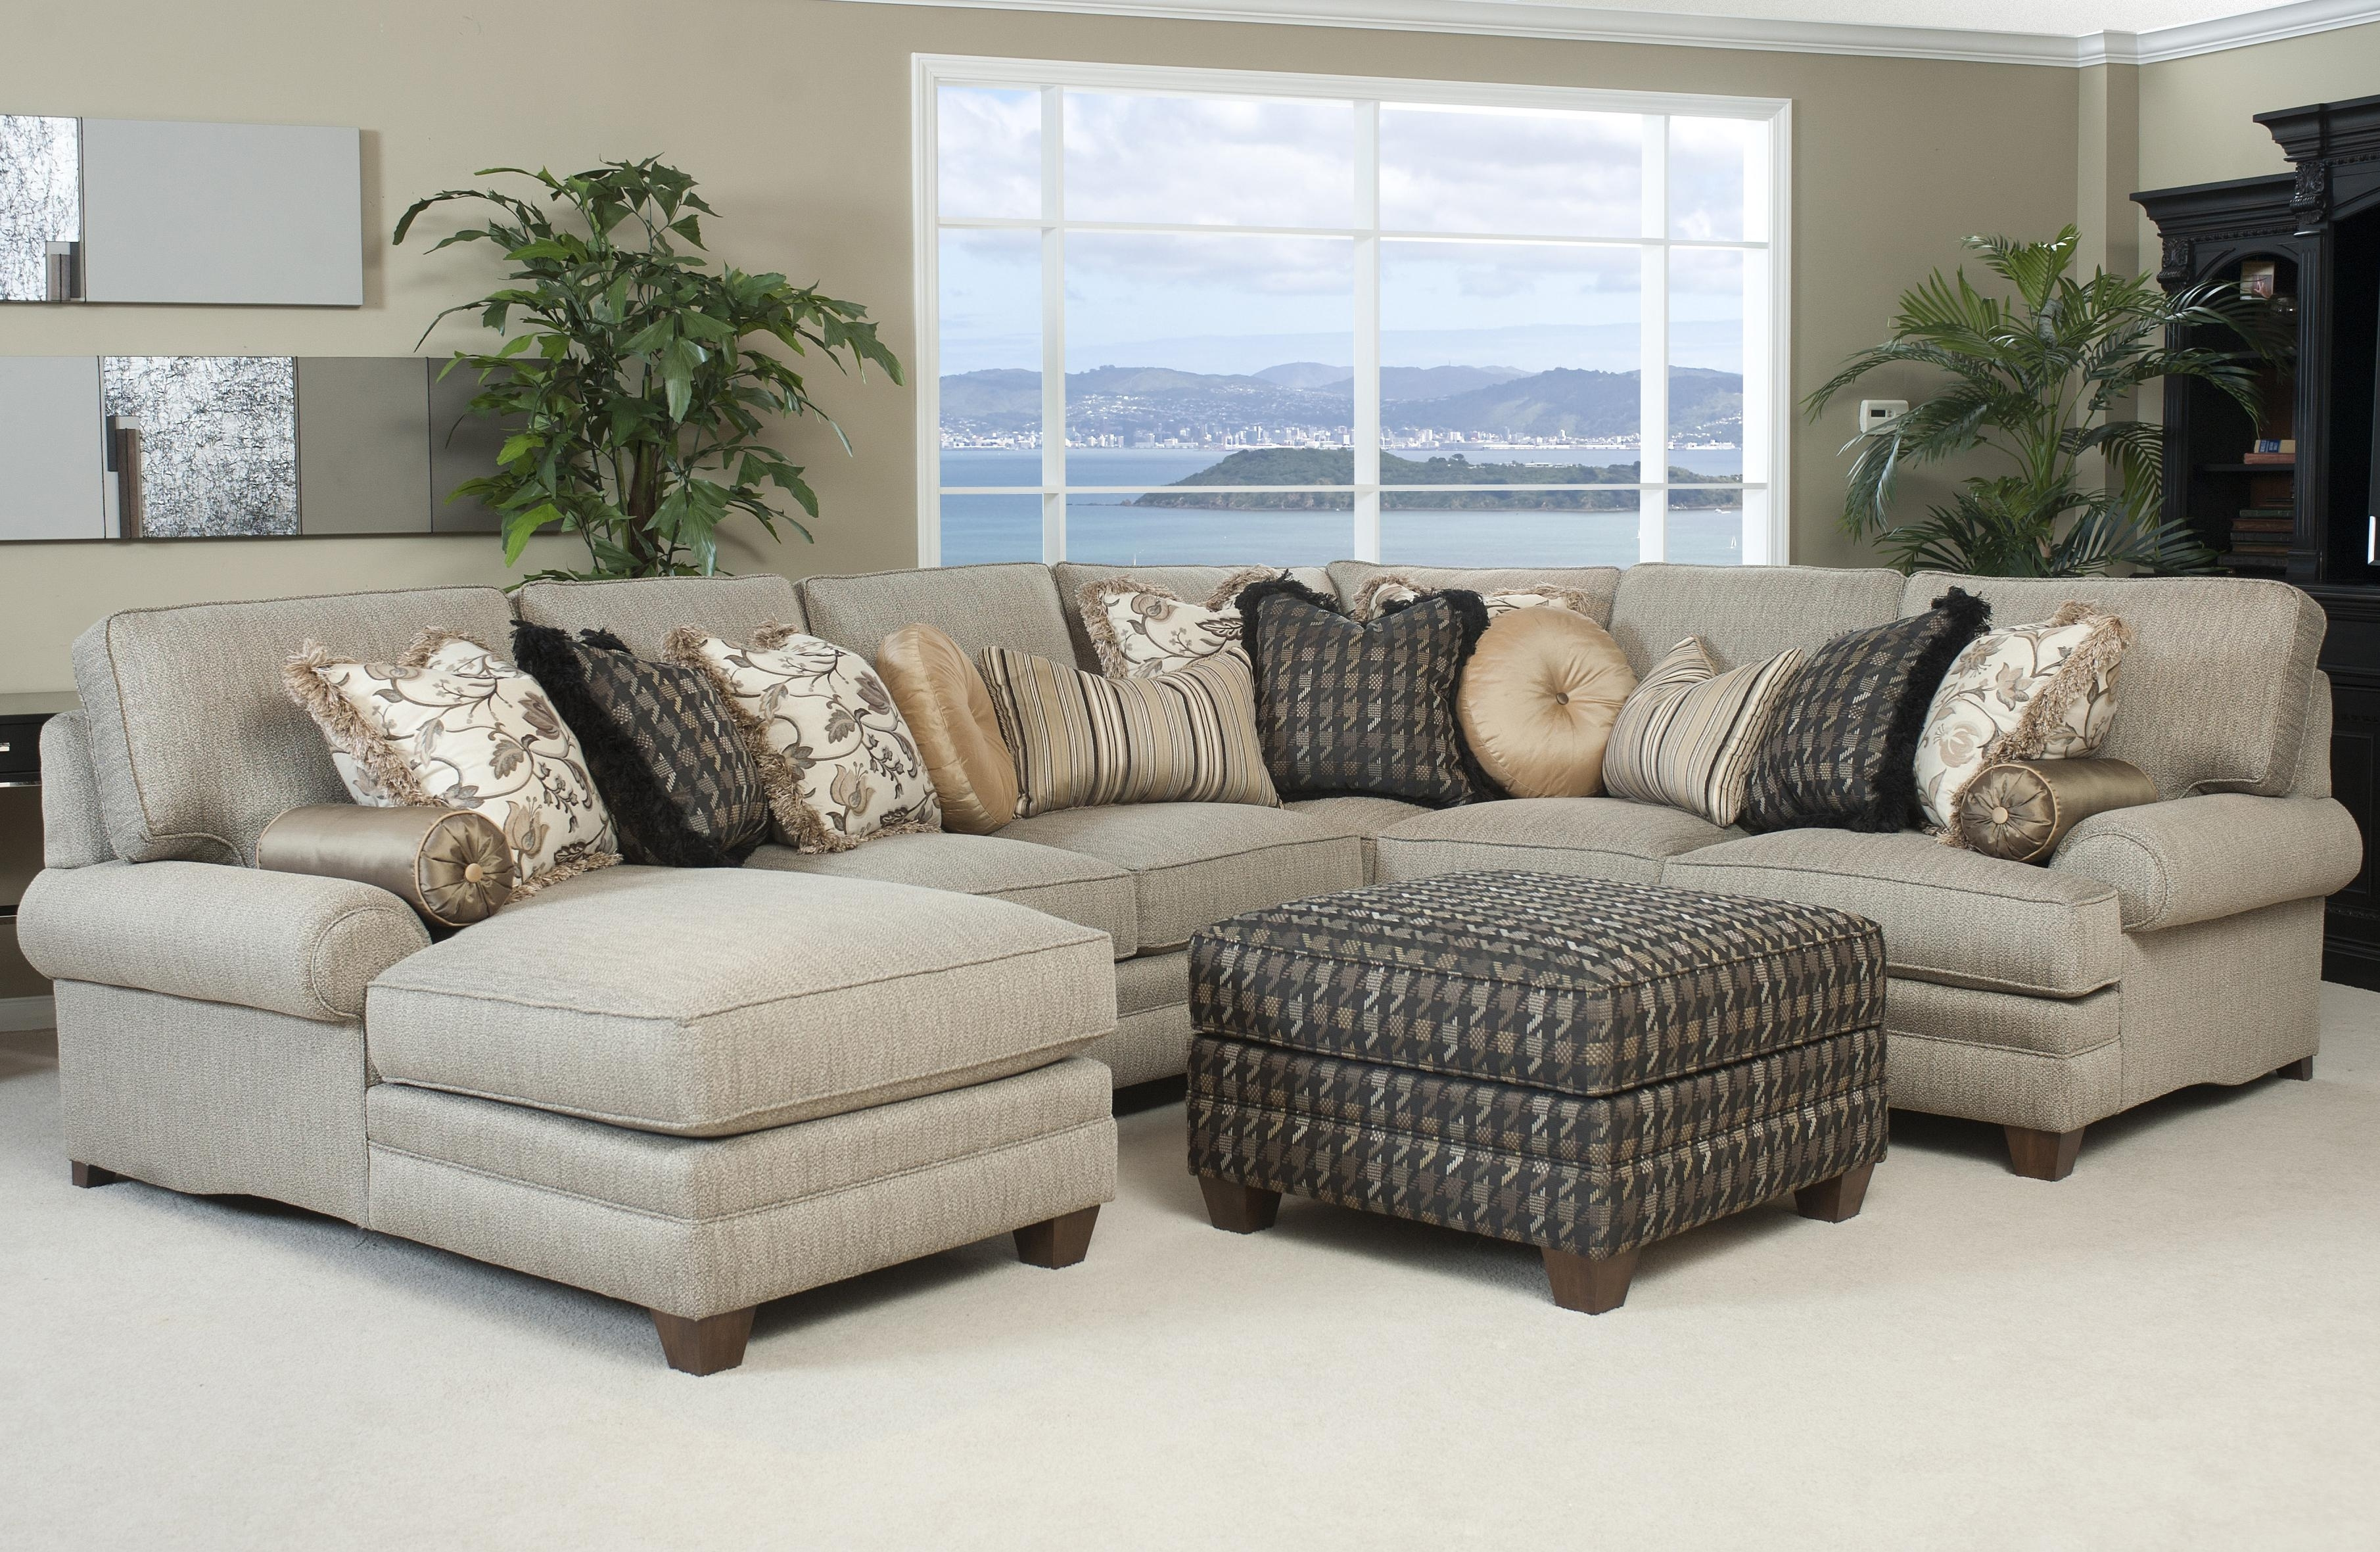 Cheap Sectional Sofas With Sectional Sofas With Chaise Lounge And Inside Sofas With Chaise And Ottoman (View 10 of 10)